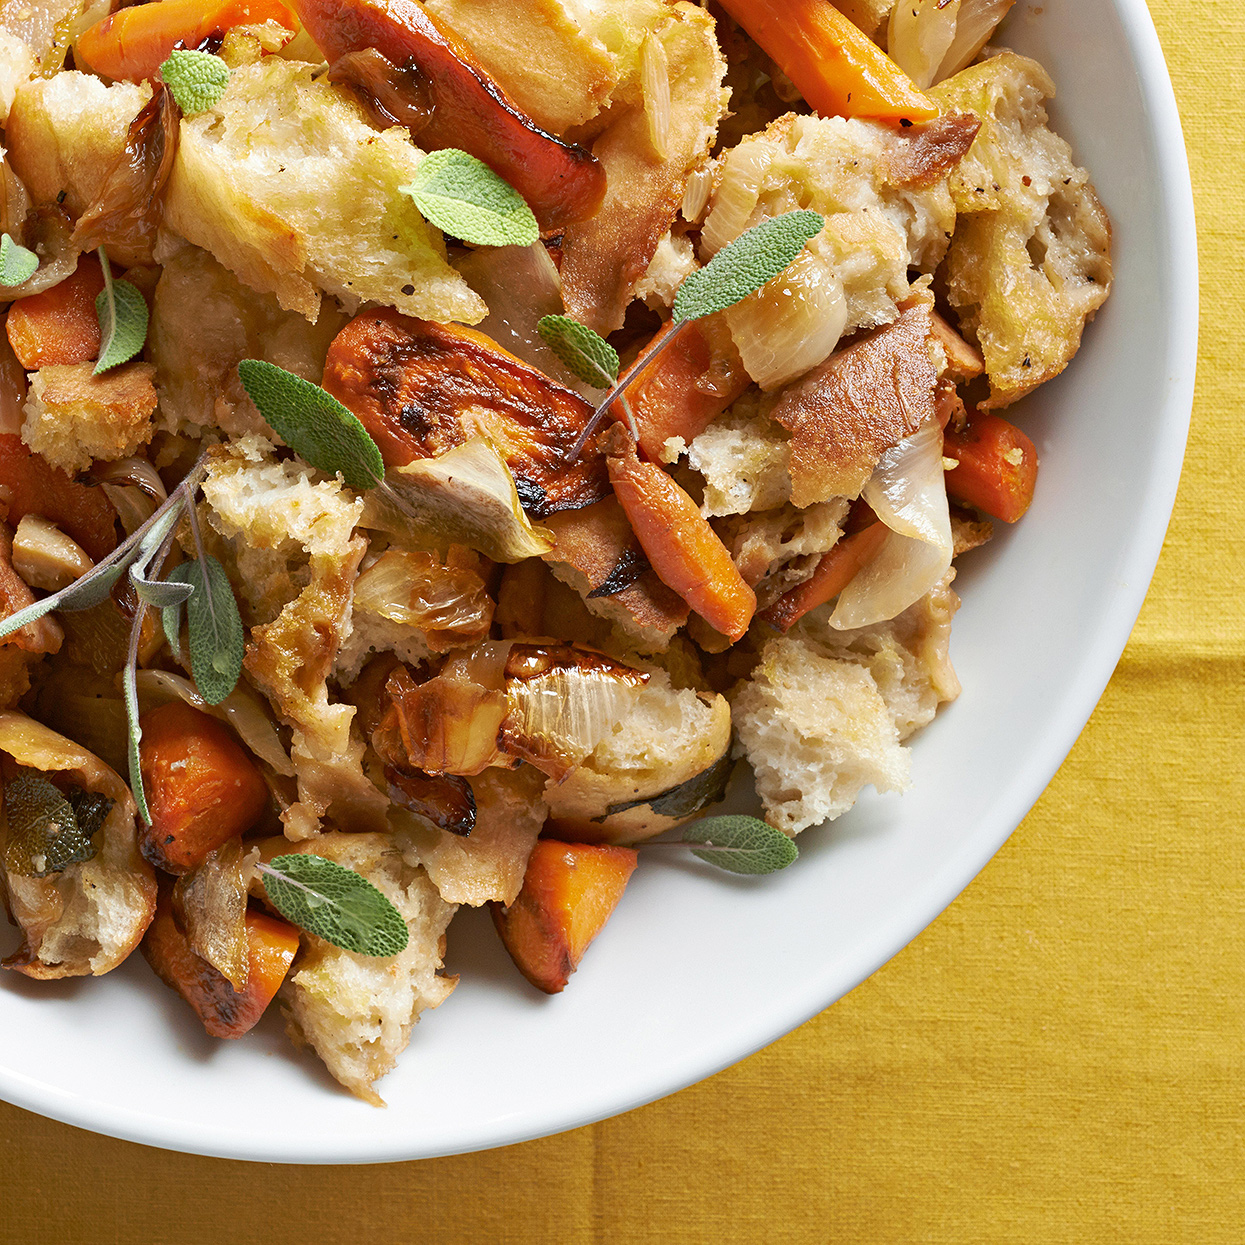 Caramelized Onion and Carrot Stuffing